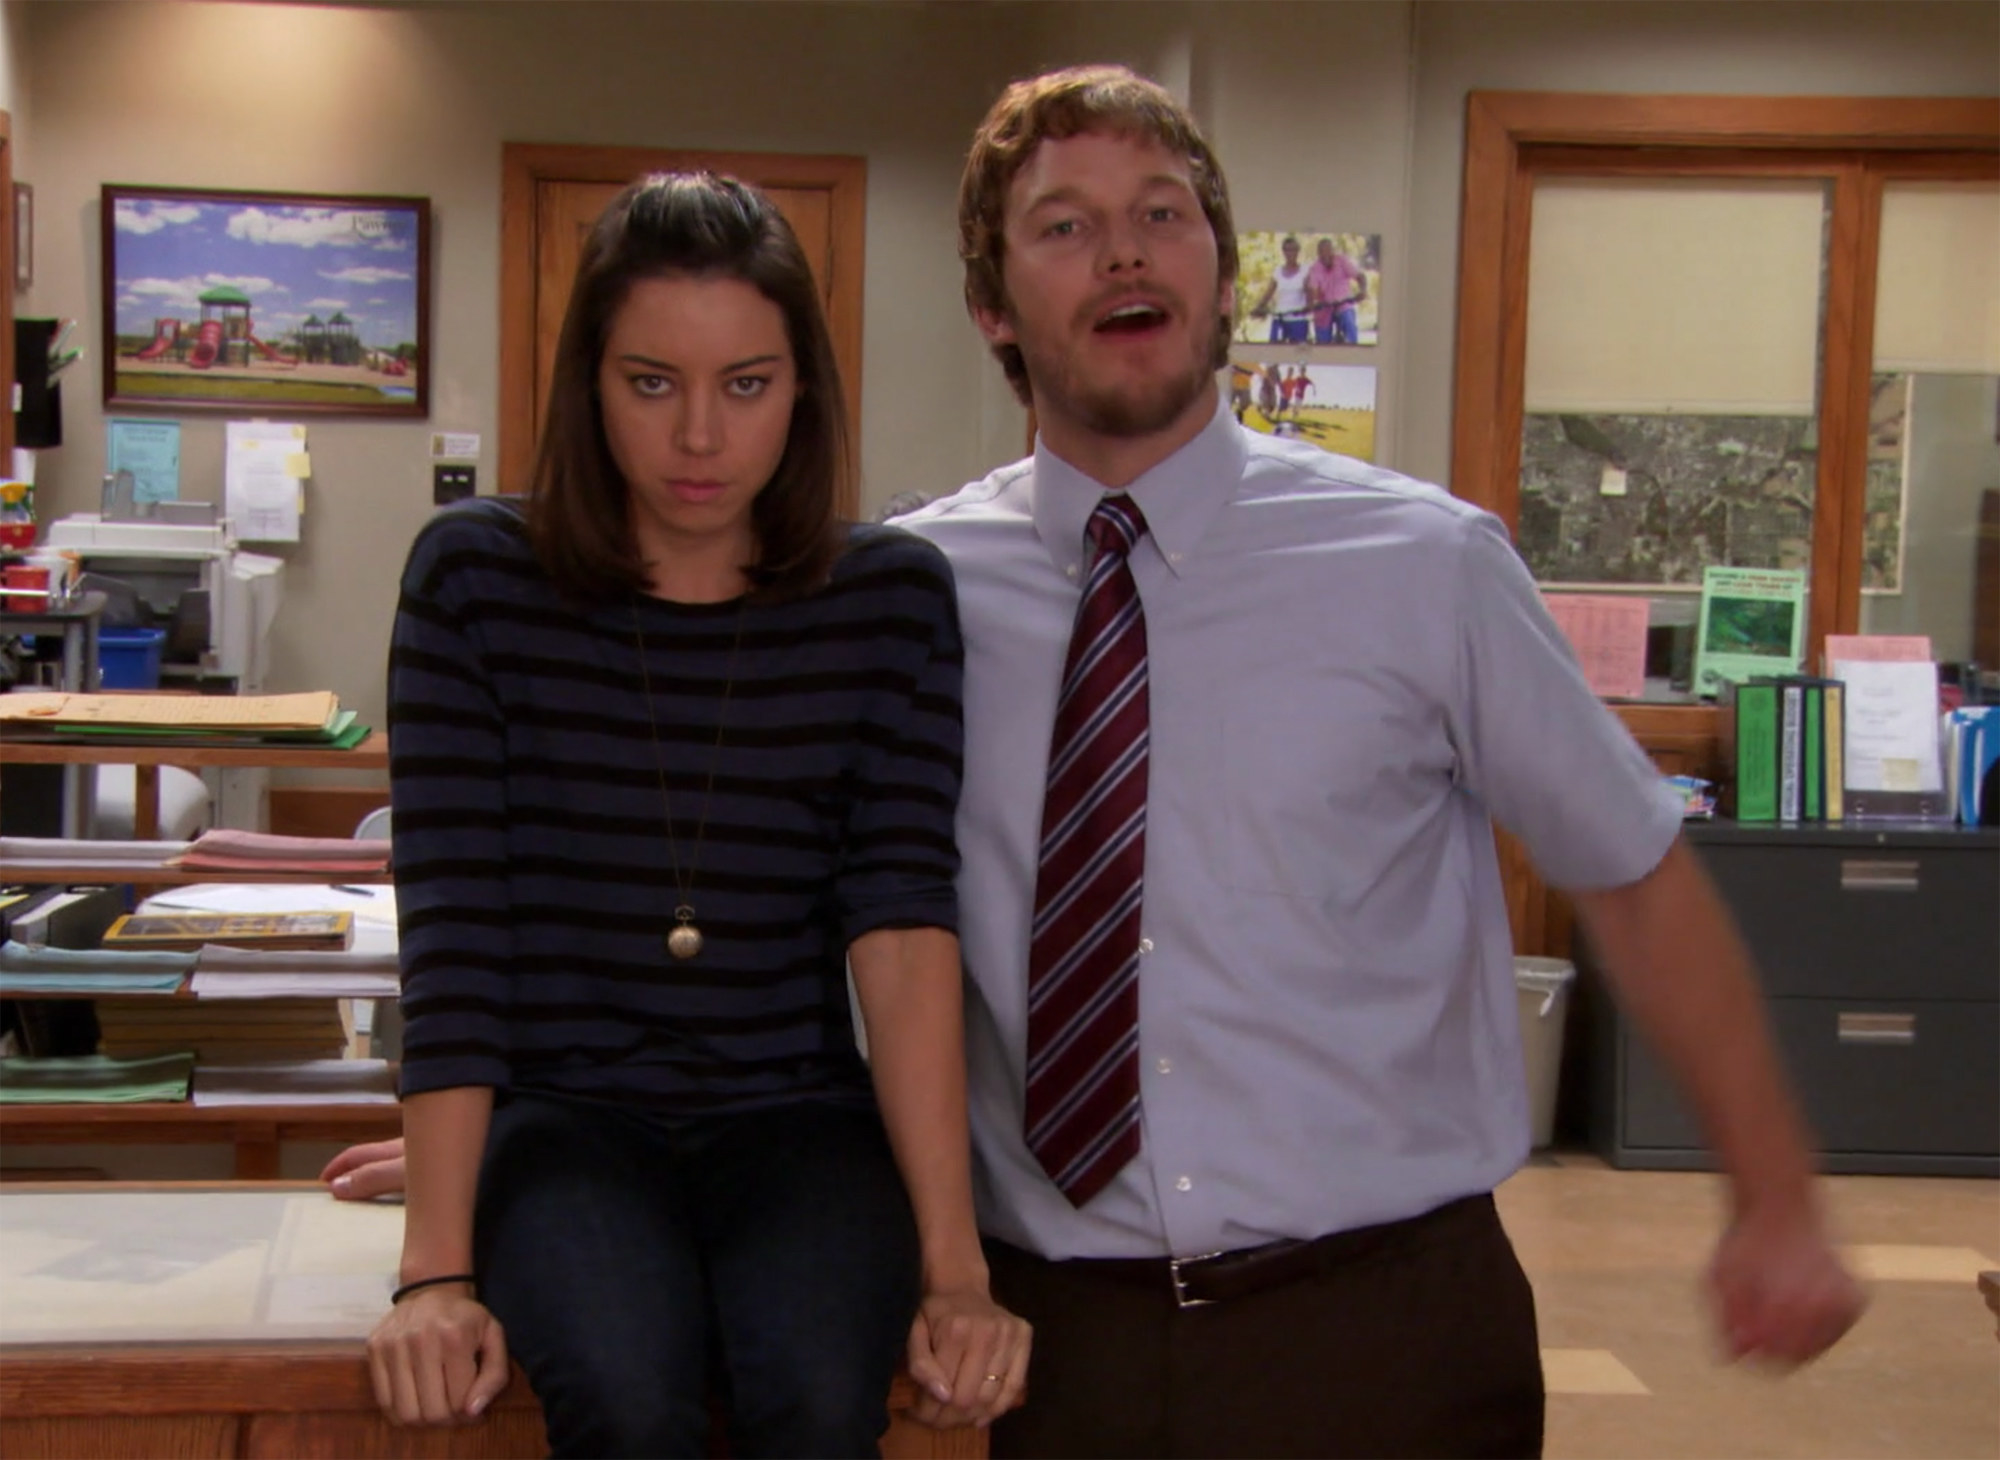 April sitting on a desk next to Andy